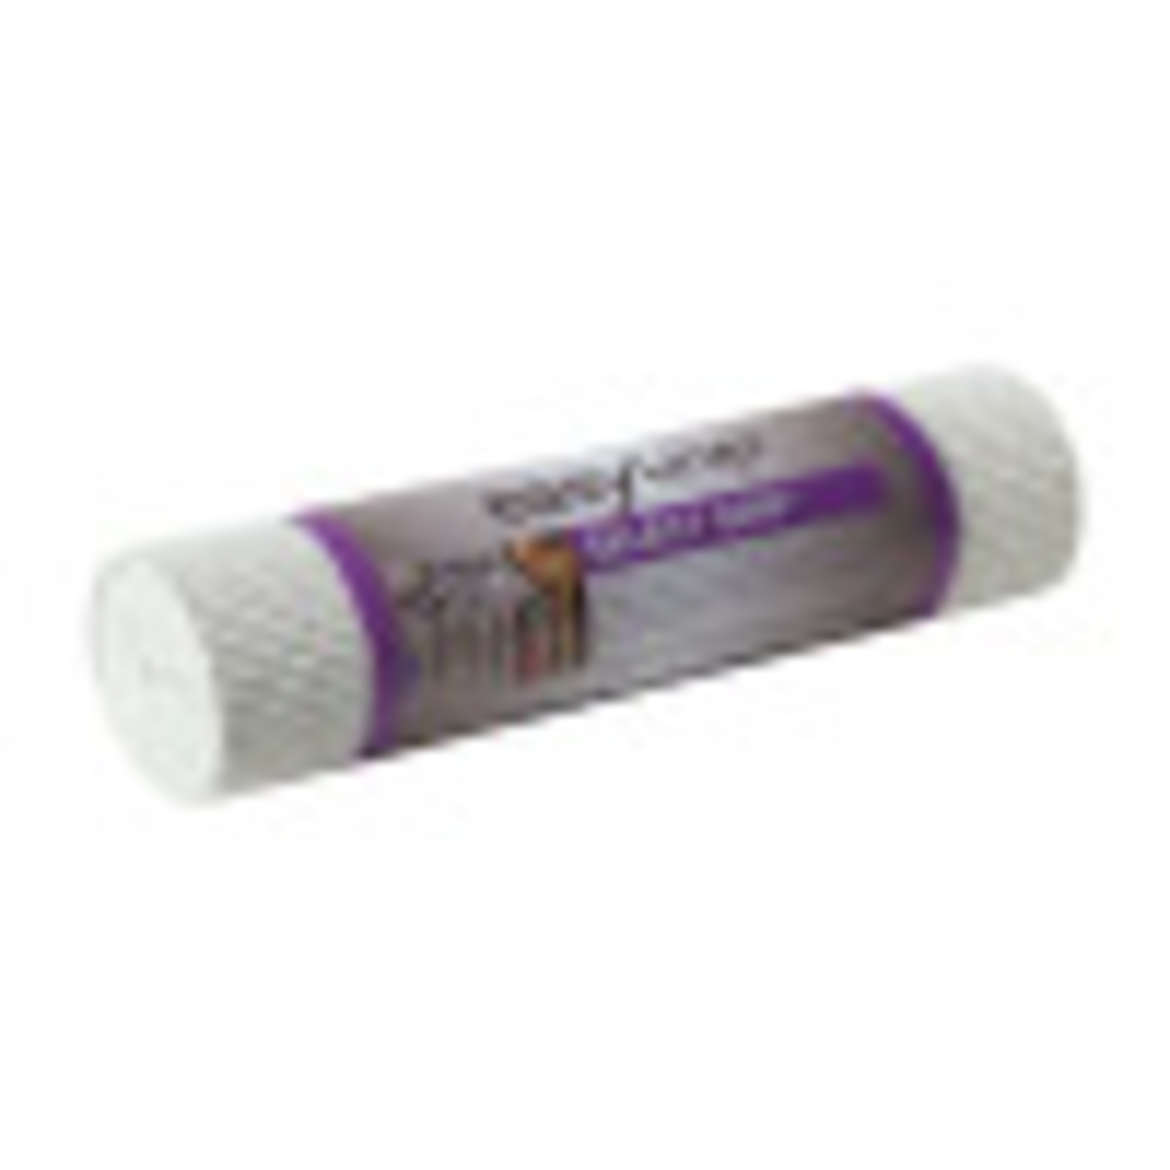 Select Grip™ Easy Liner® Brand Shelf Liner - White, 12 in. x 10 ft. Image